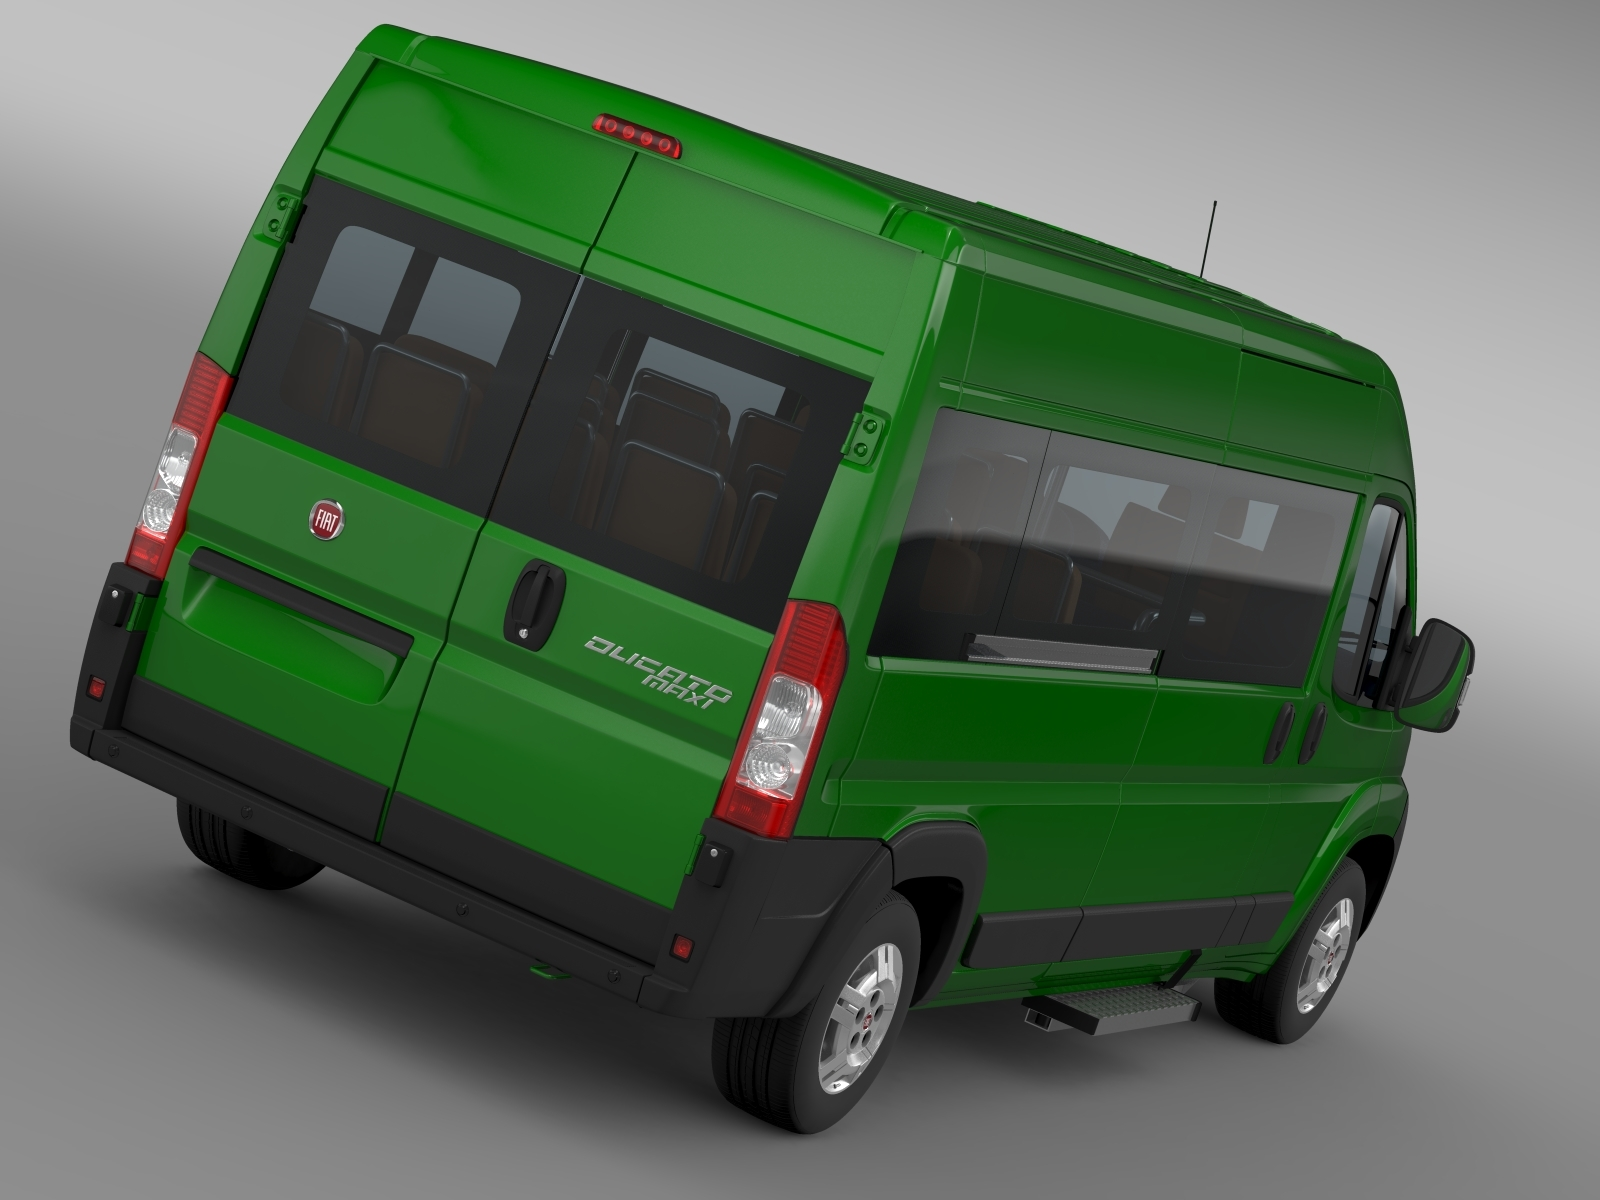 fiat ducato maxi bus l4h2 2006 2014 by creator 3d 3docean. Black Bedroom Furniture Sets. Home Design Ideas